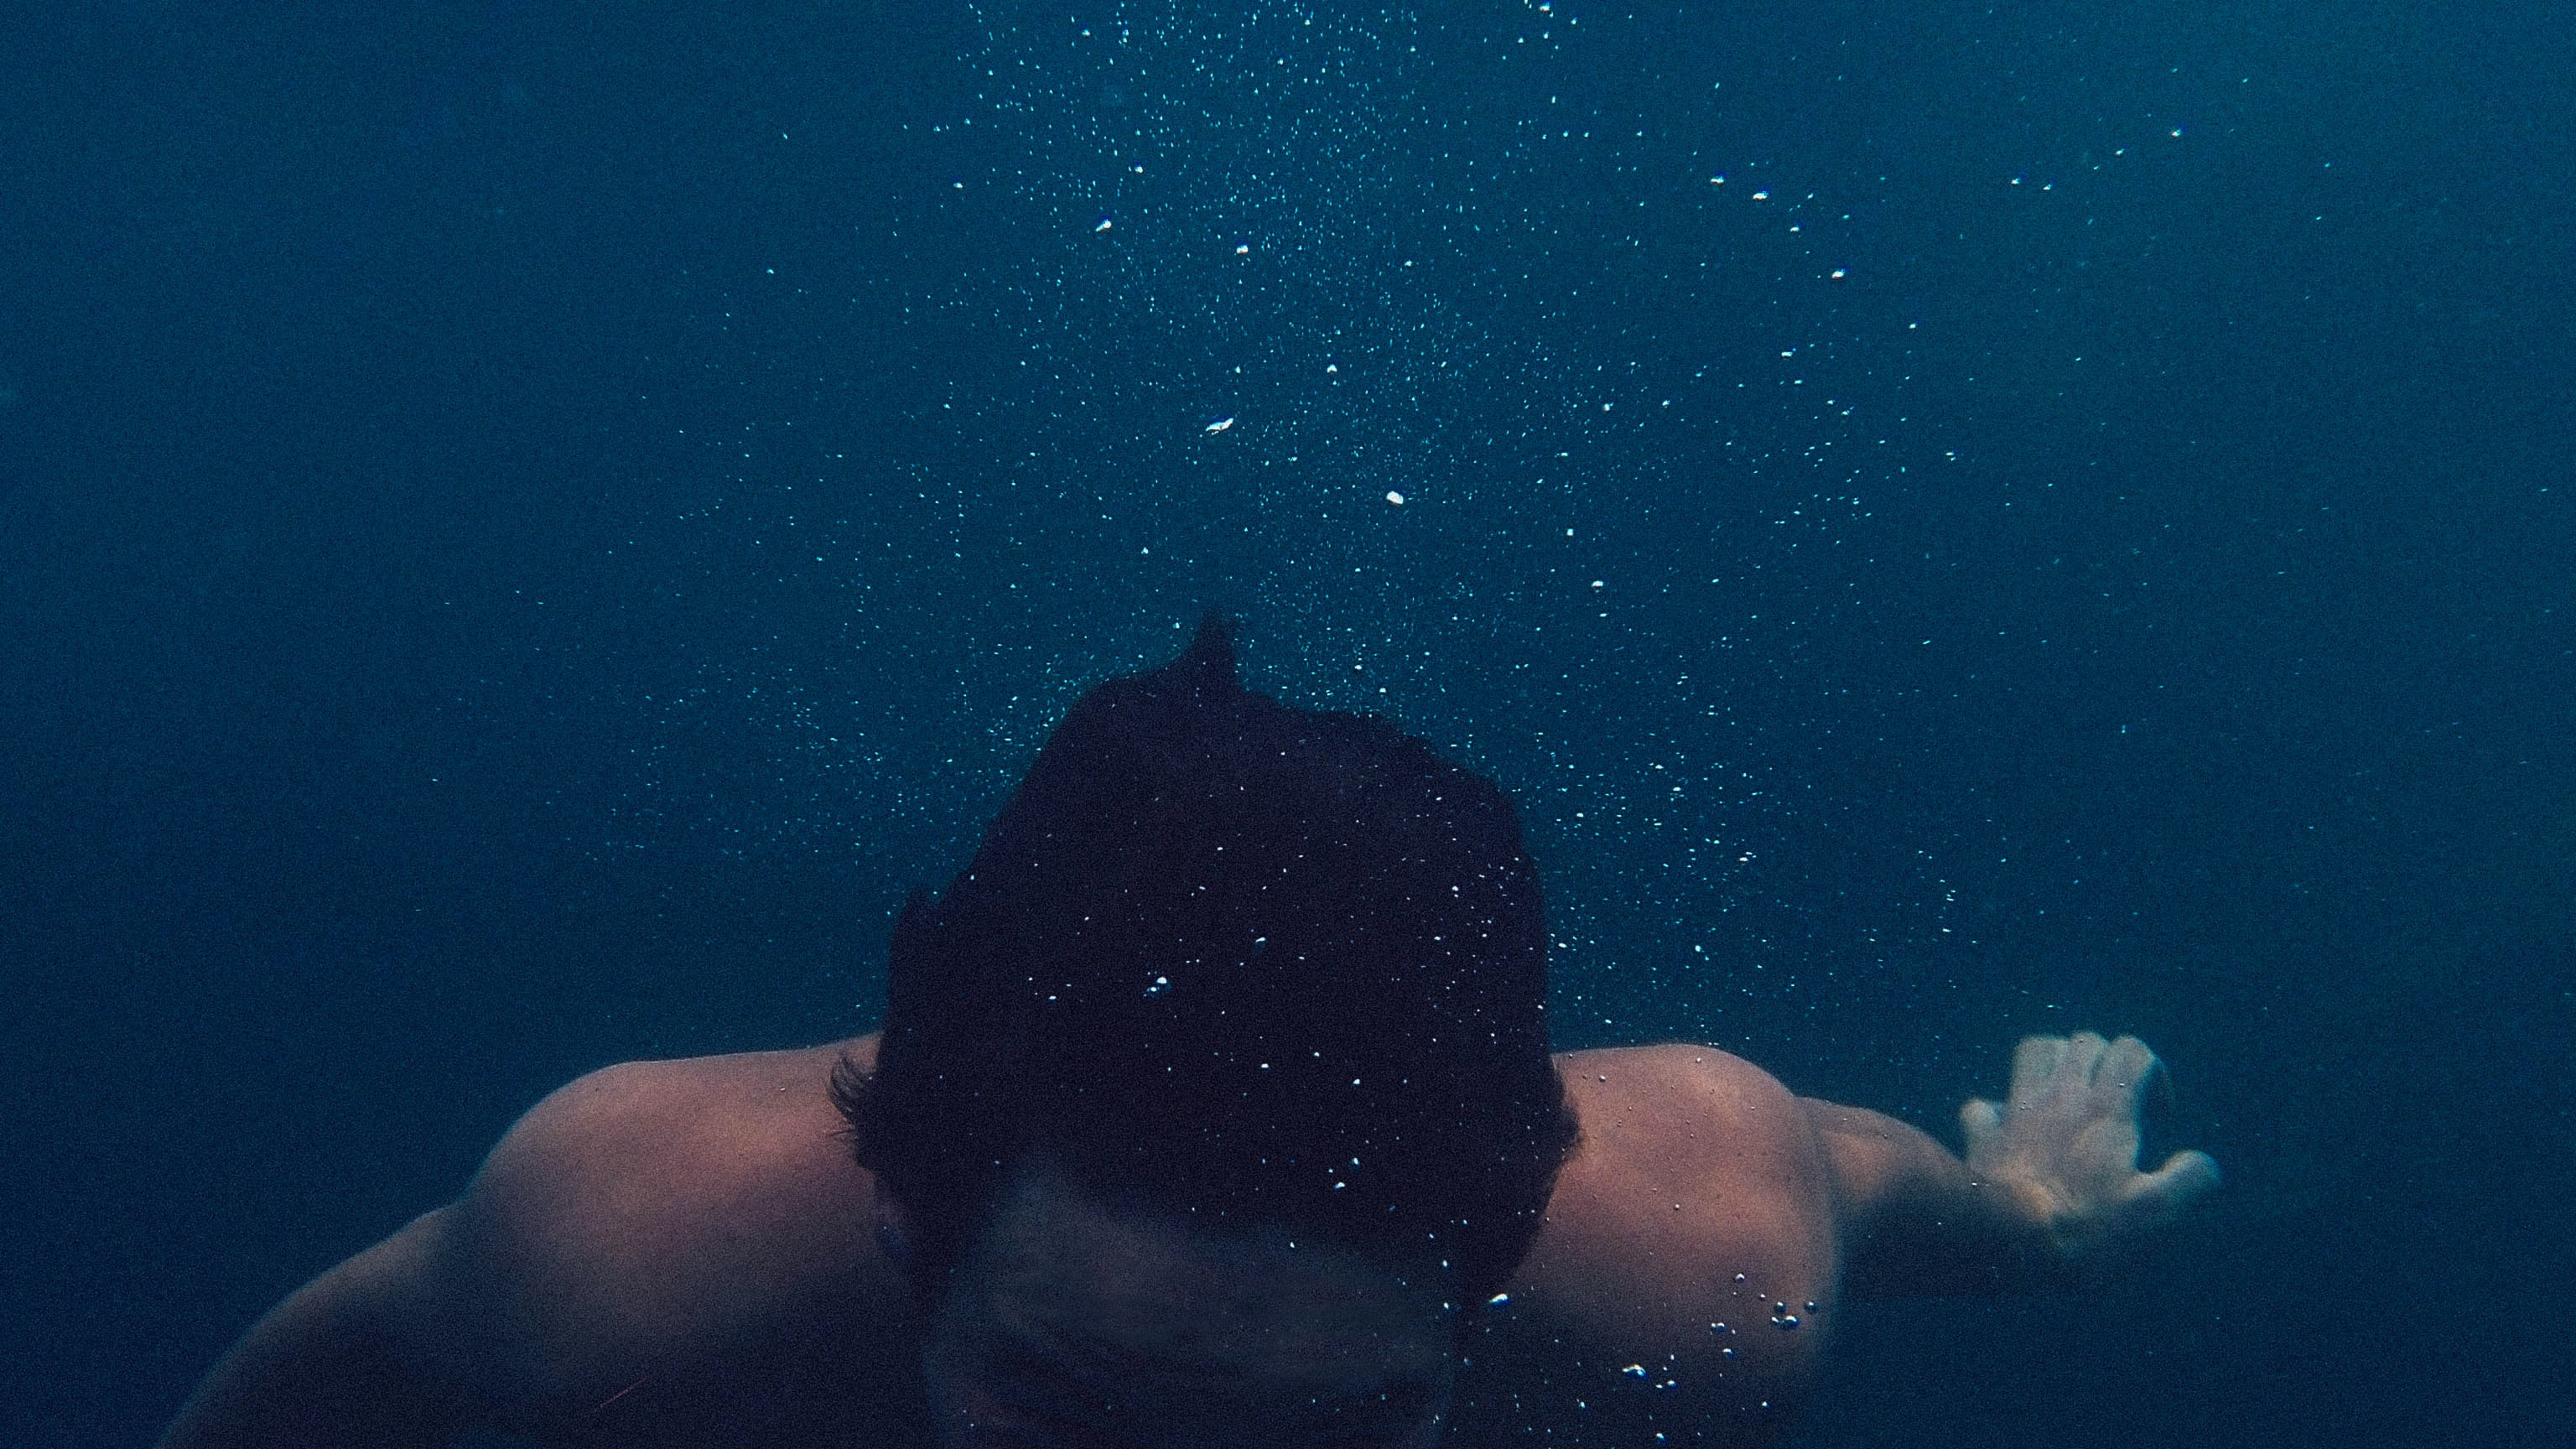 man submerged on body of water